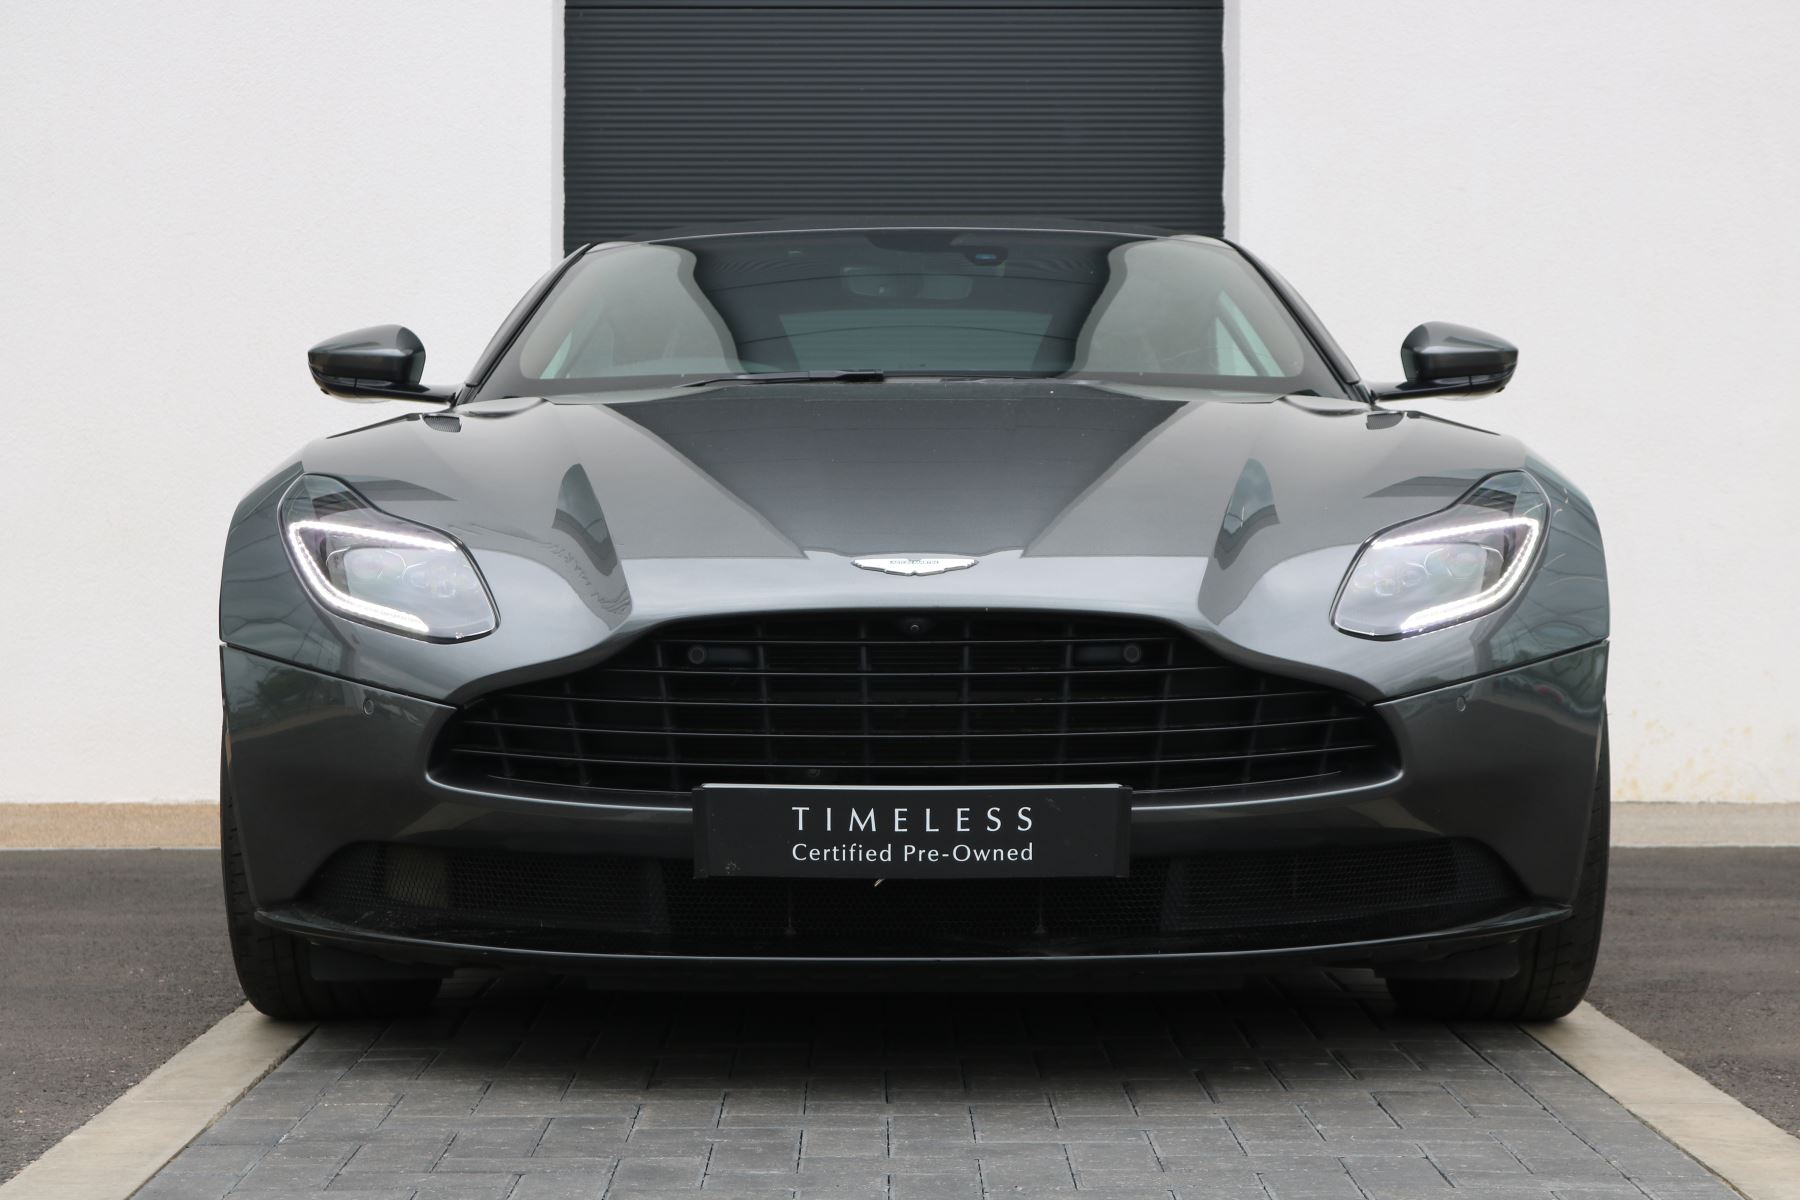 Aston Martin DB11 Coupe  4.0 Semi-Automatic 2 door (2017) image